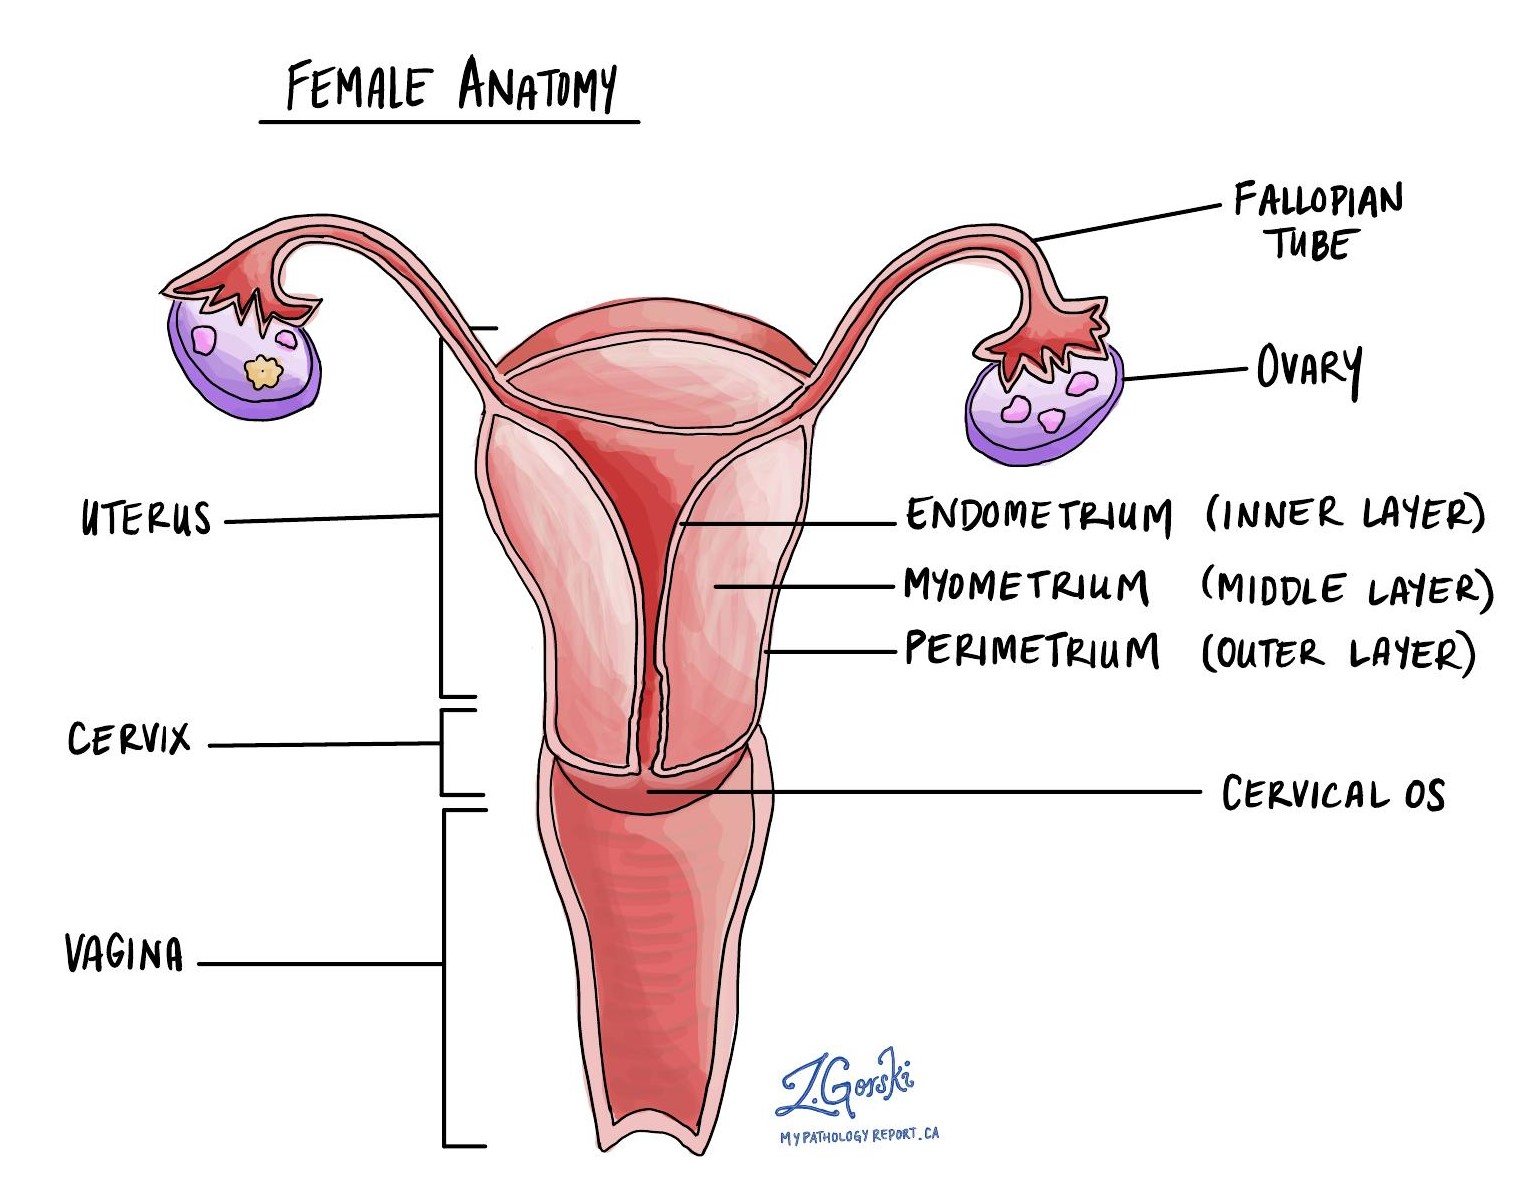 Gynecological tract